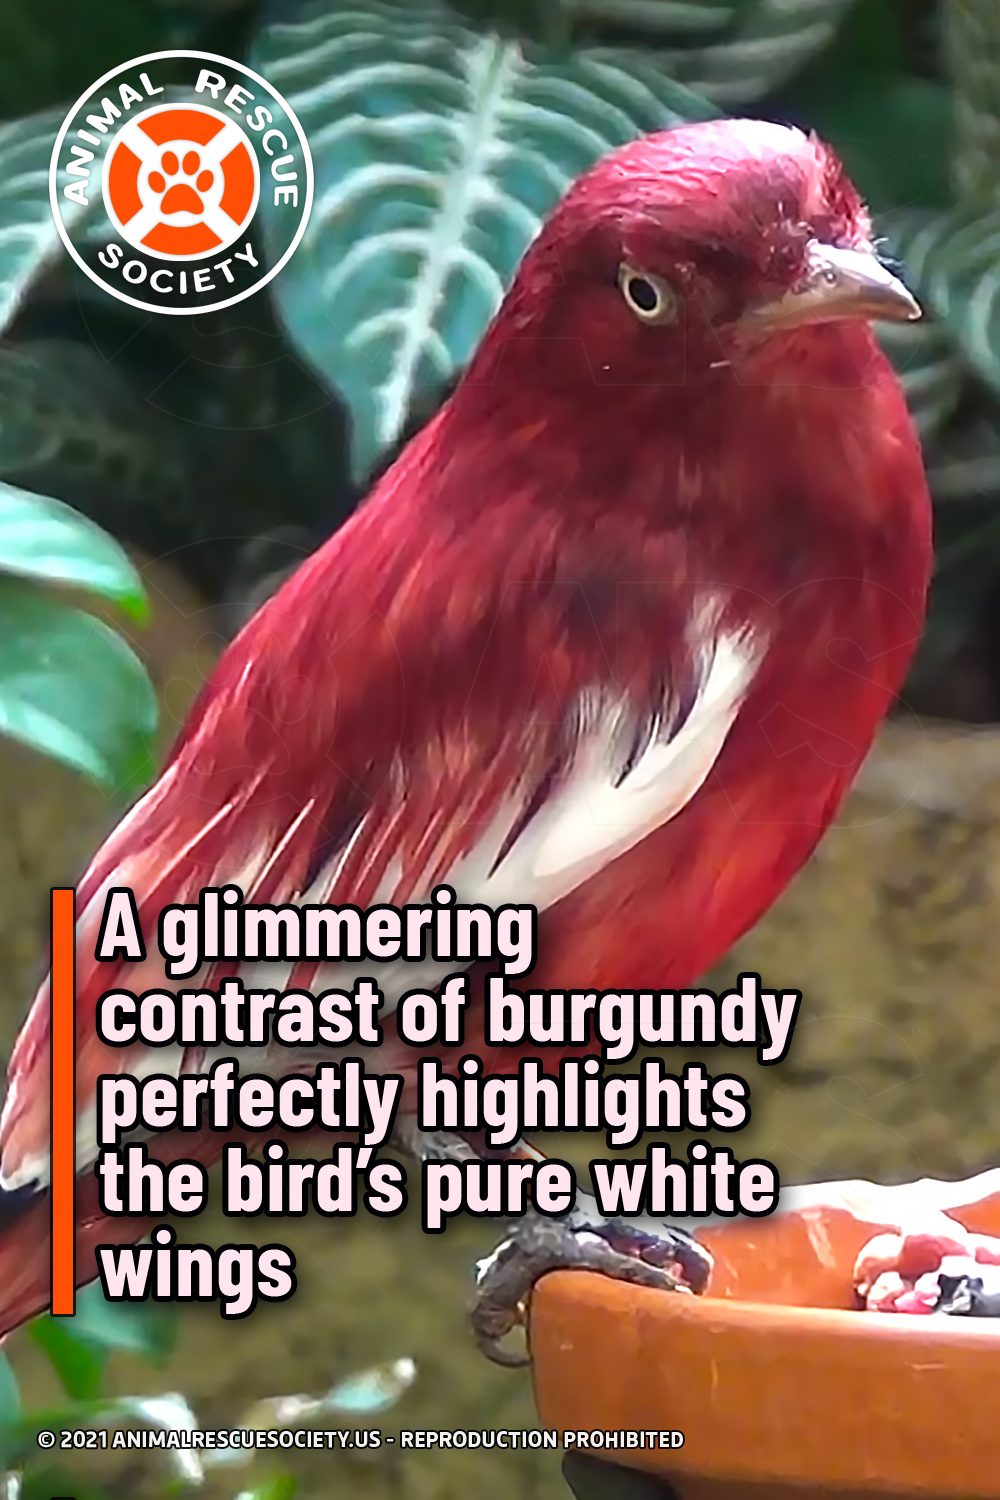 A glimmering contrast of burgundy perfectly highlights the bird's pure white wings